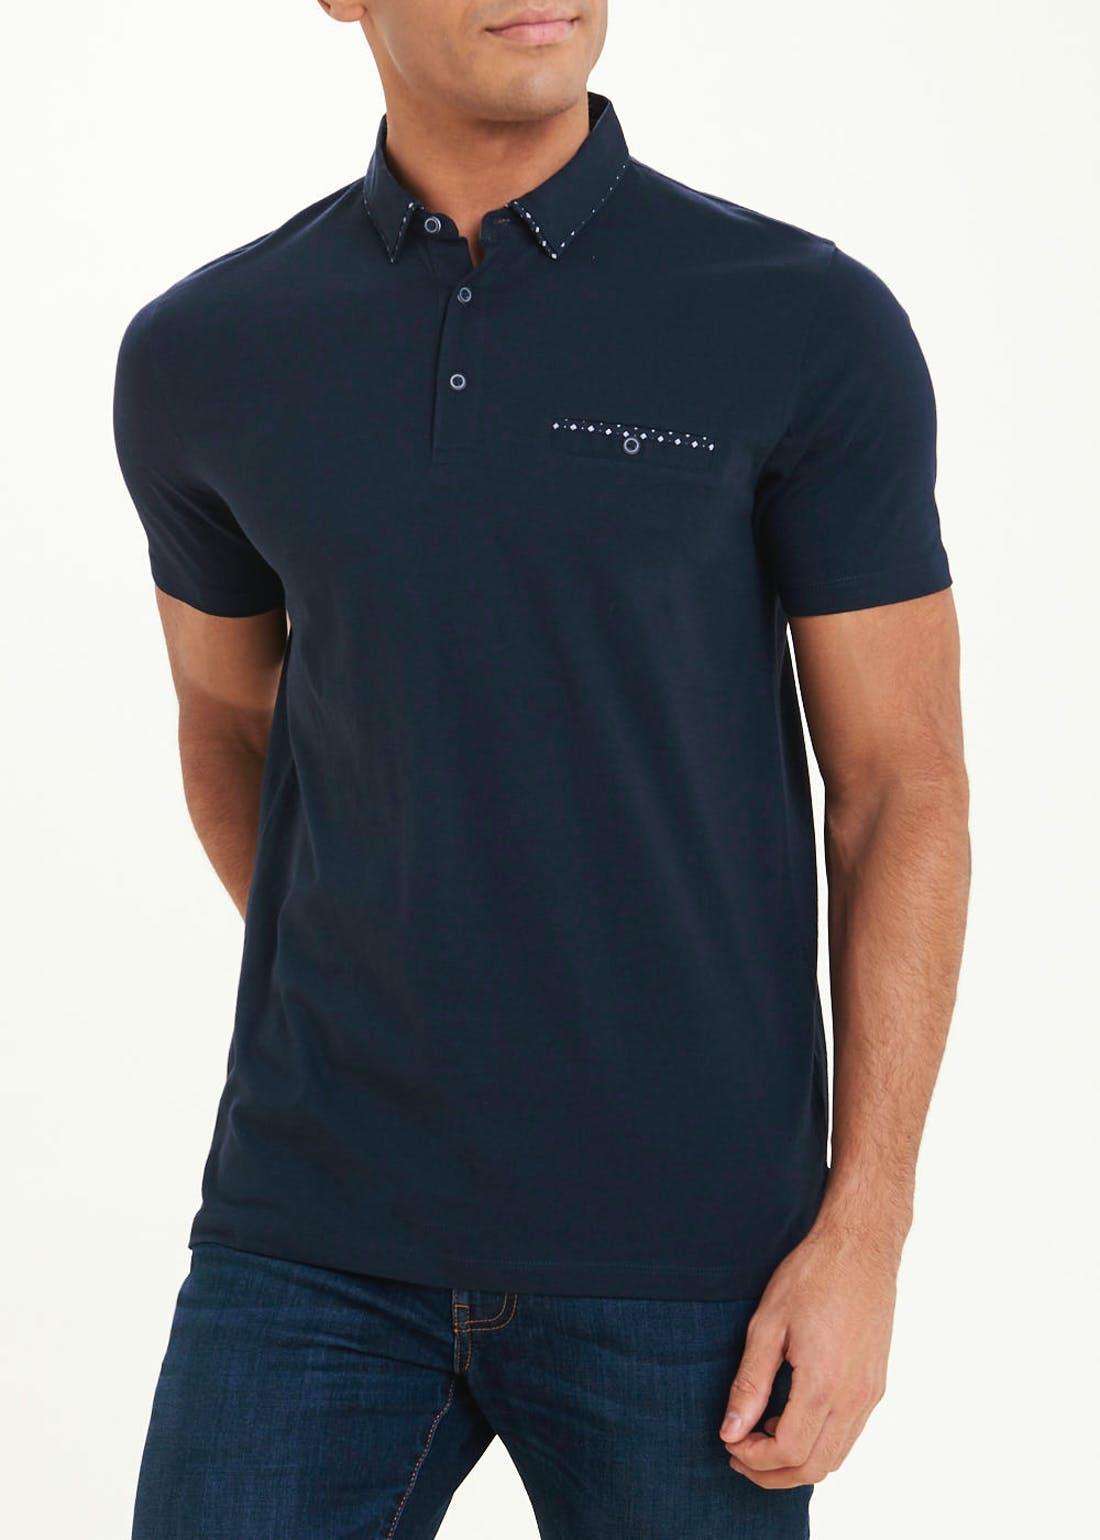 Short Sleeve Woven Cotton Polo Shirt